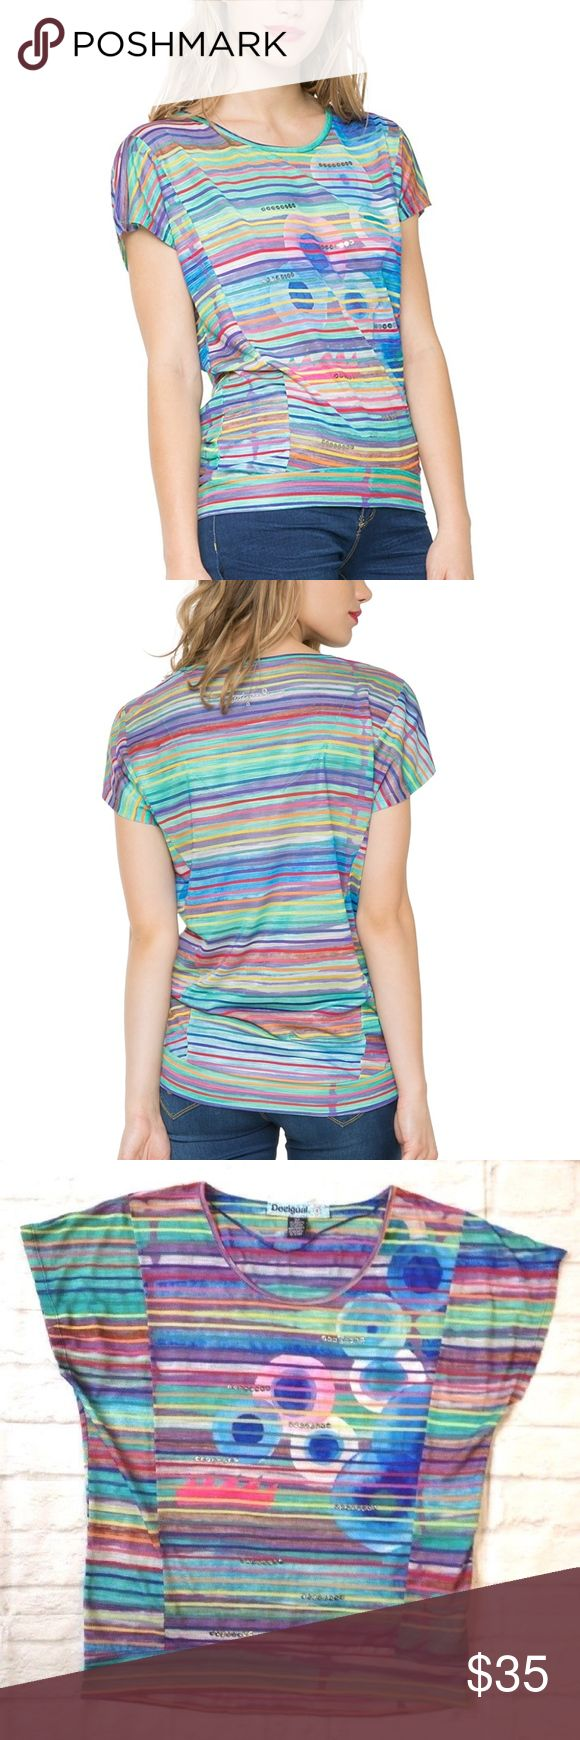 DESIGUAL ANTHEA STRIPE SEQUIN TEE SHIRT TOP SMALL CUTE DESIGUAL ANTHEA MULTI-COLOURED STRIPE TEE FINISHED WITH SILVER SEQUINS  Womens size Small pit to pit = 20'' length = 34''  LIGHT & COMFORTABLE FABRIC I FOUND 2 SMALL HOLES ON THE FRONT. THEY ARE BOTH PICTURED OTHERWISE IN GOOD CONDITION. NO STAINS Desigual Tops Tees - Short Sleeve